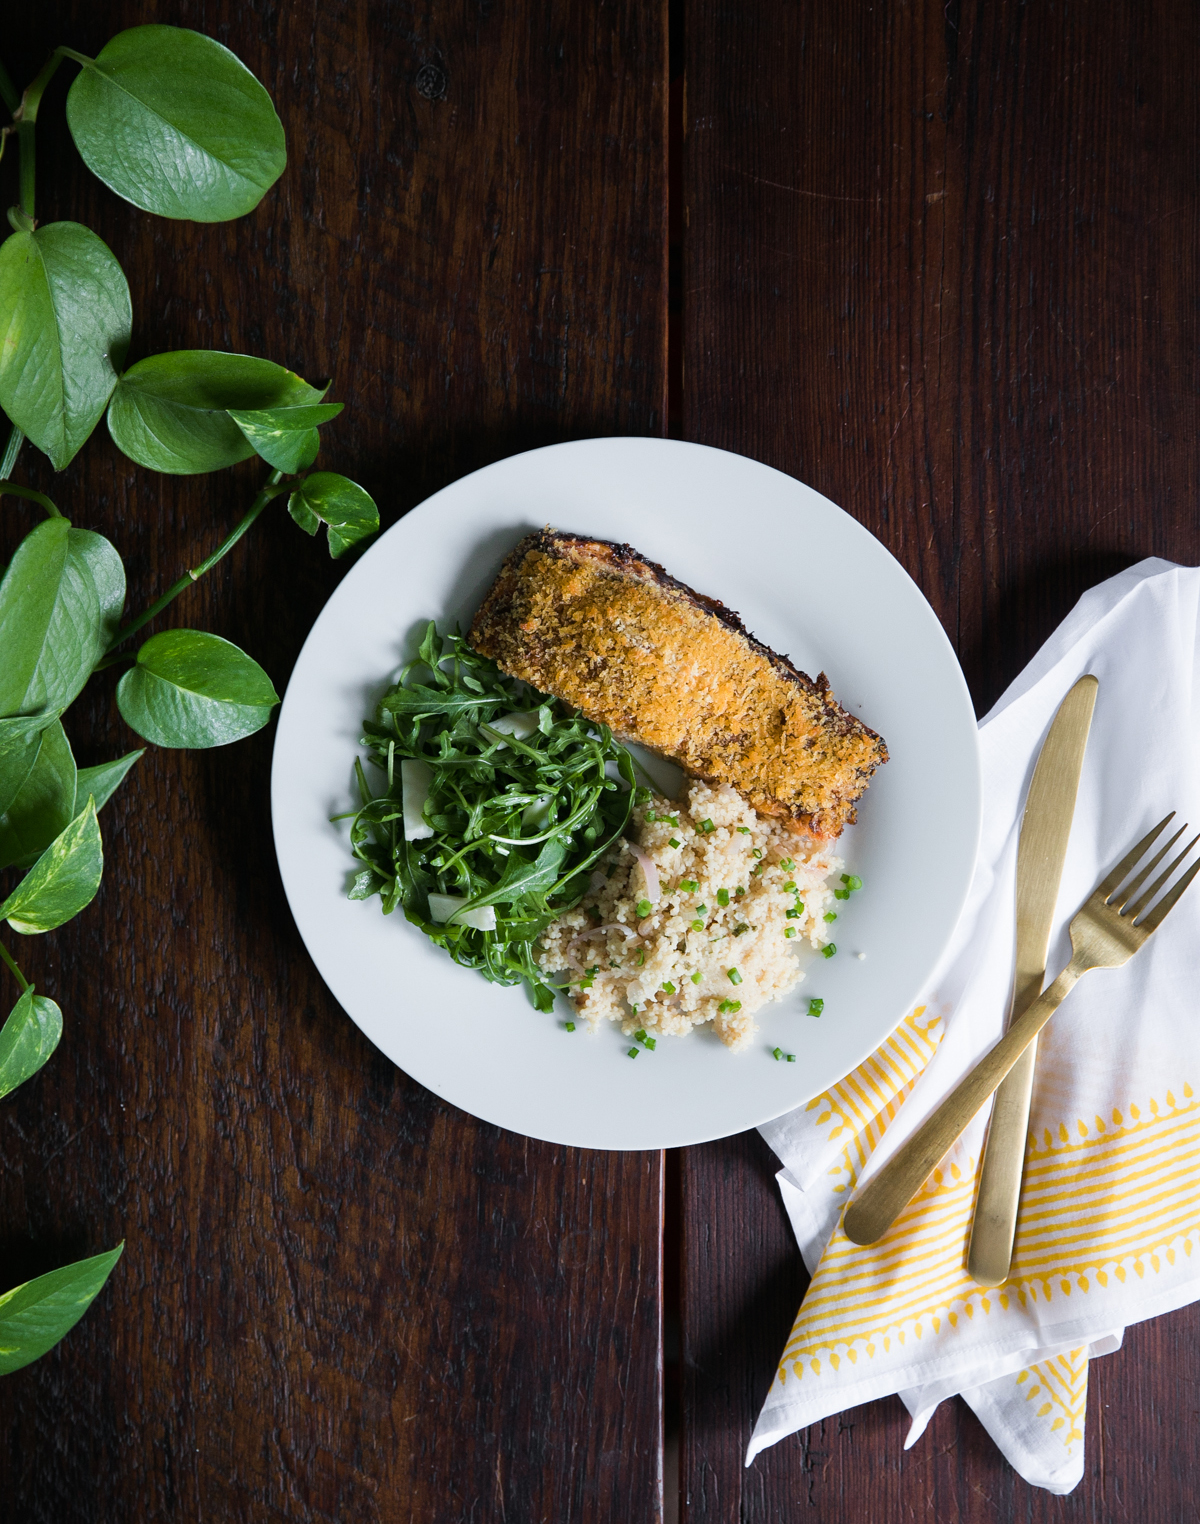 Healthy Winter Meals | Crispy Baked Salmon | Salmon Recipes | Quick Healthy Meals | Baked Salmon Recipe | Jessica Brigham | Magazine Ready for Life